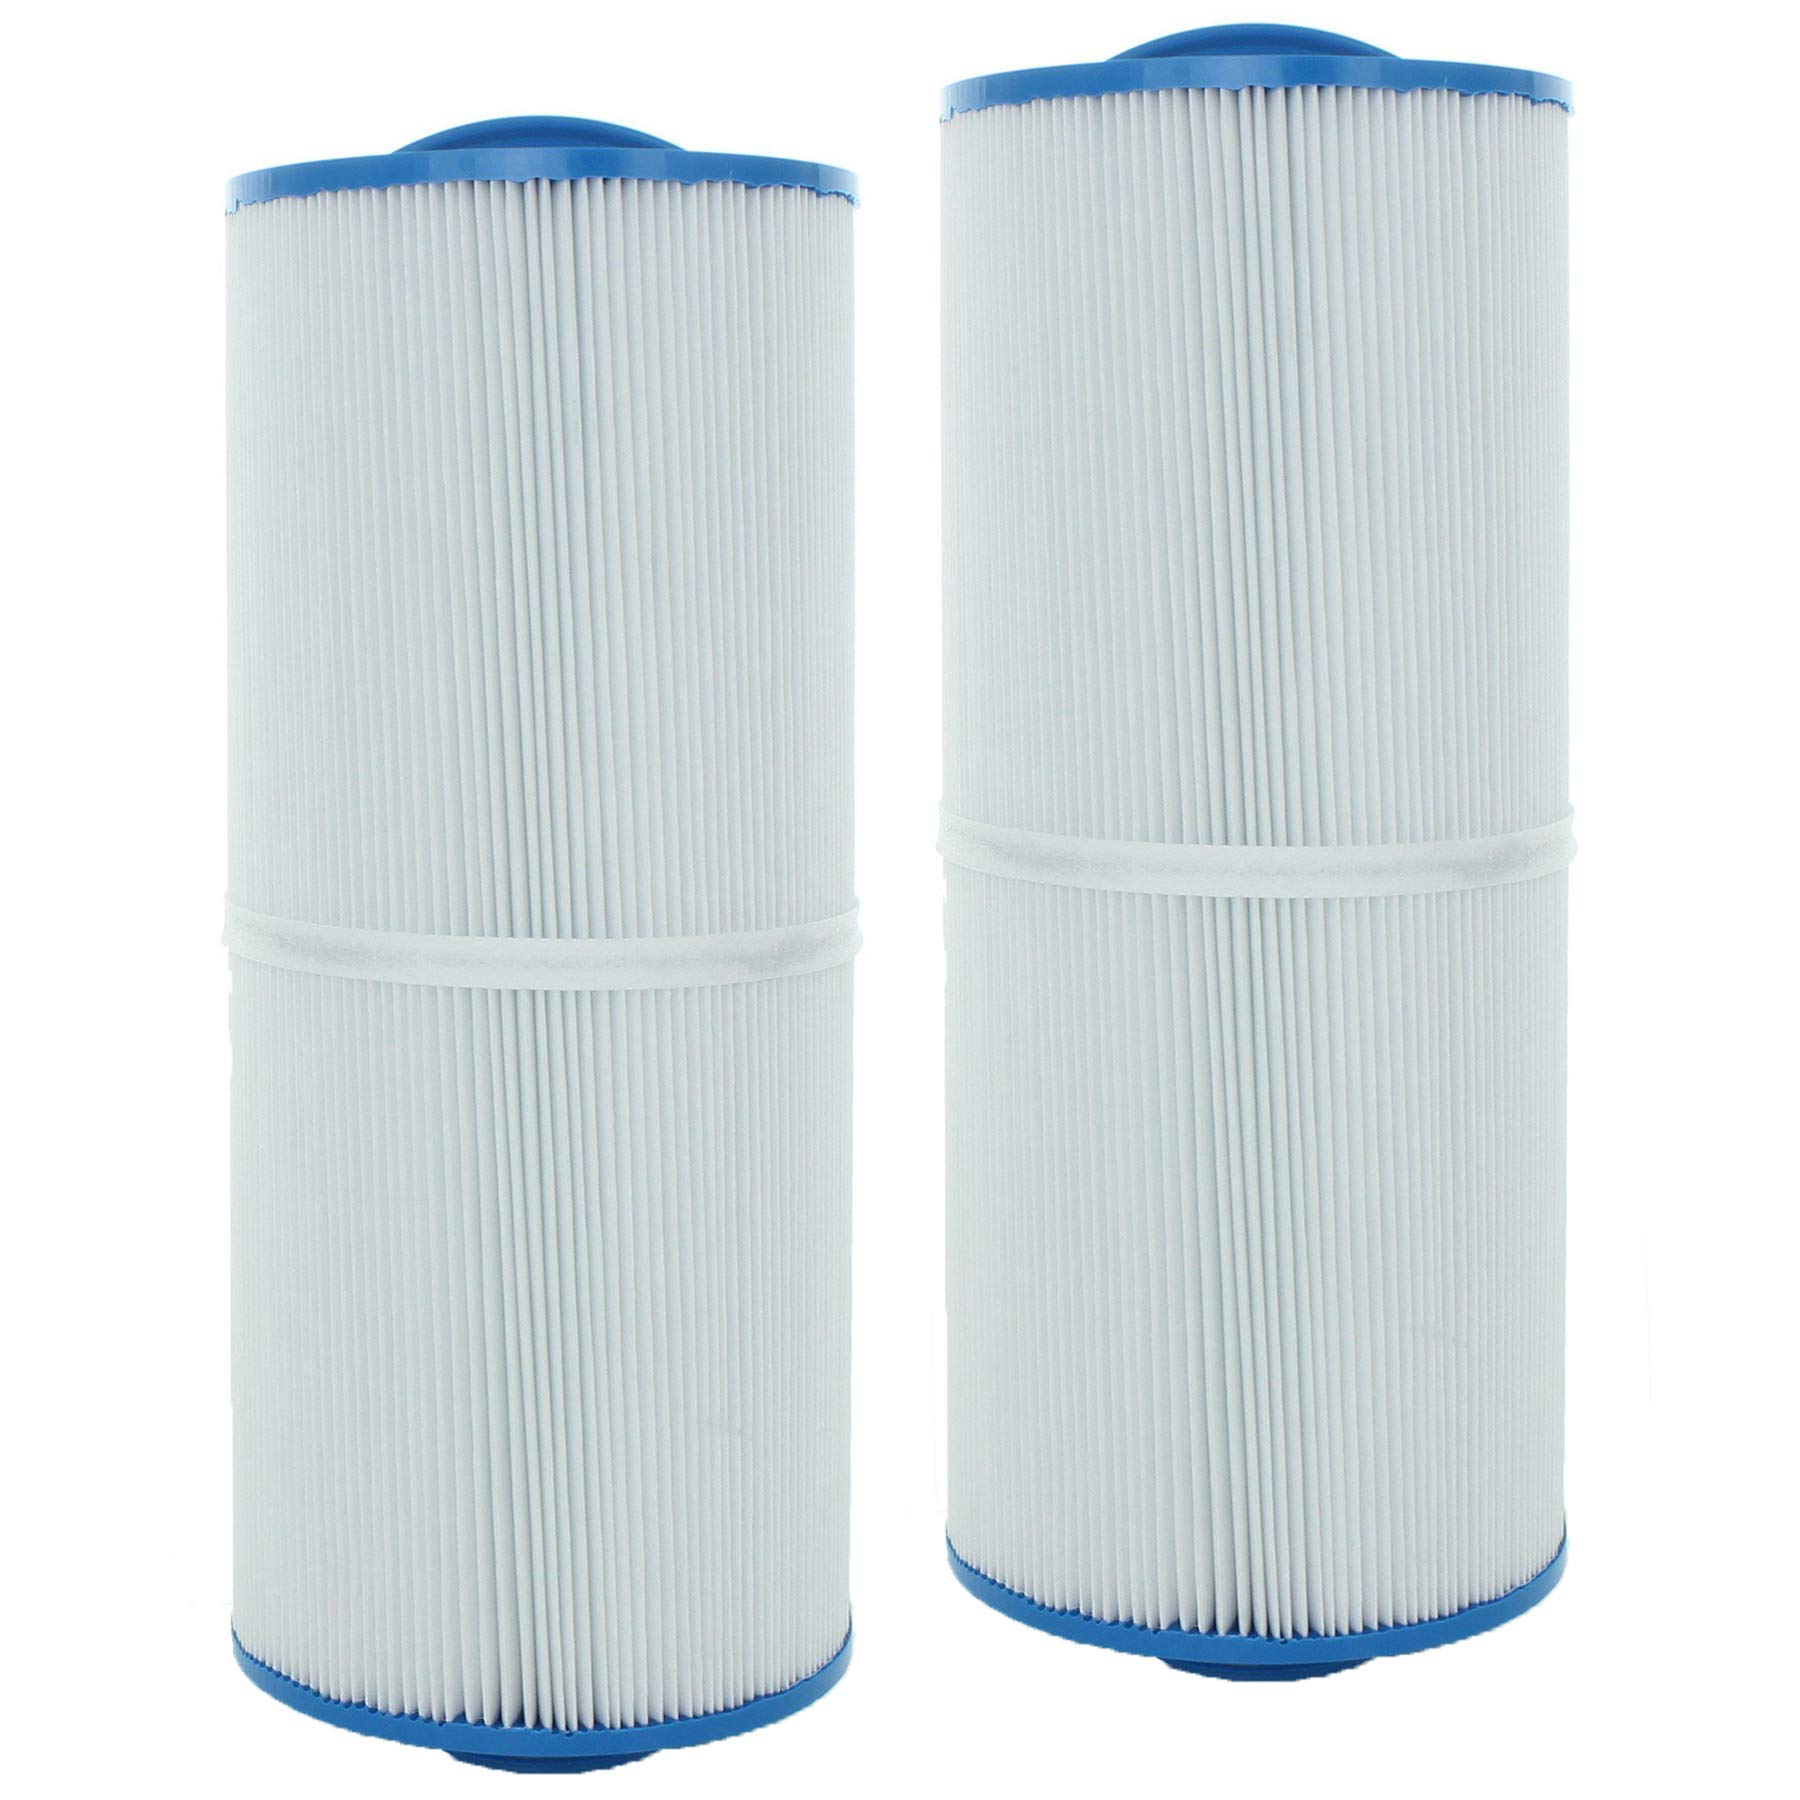 2 Guardian Pool Spa Filters Replace Unicel 5CH-352 Filbur FC-0196 Pleatco PPM35SC-F2M by Guardian Filtration Products